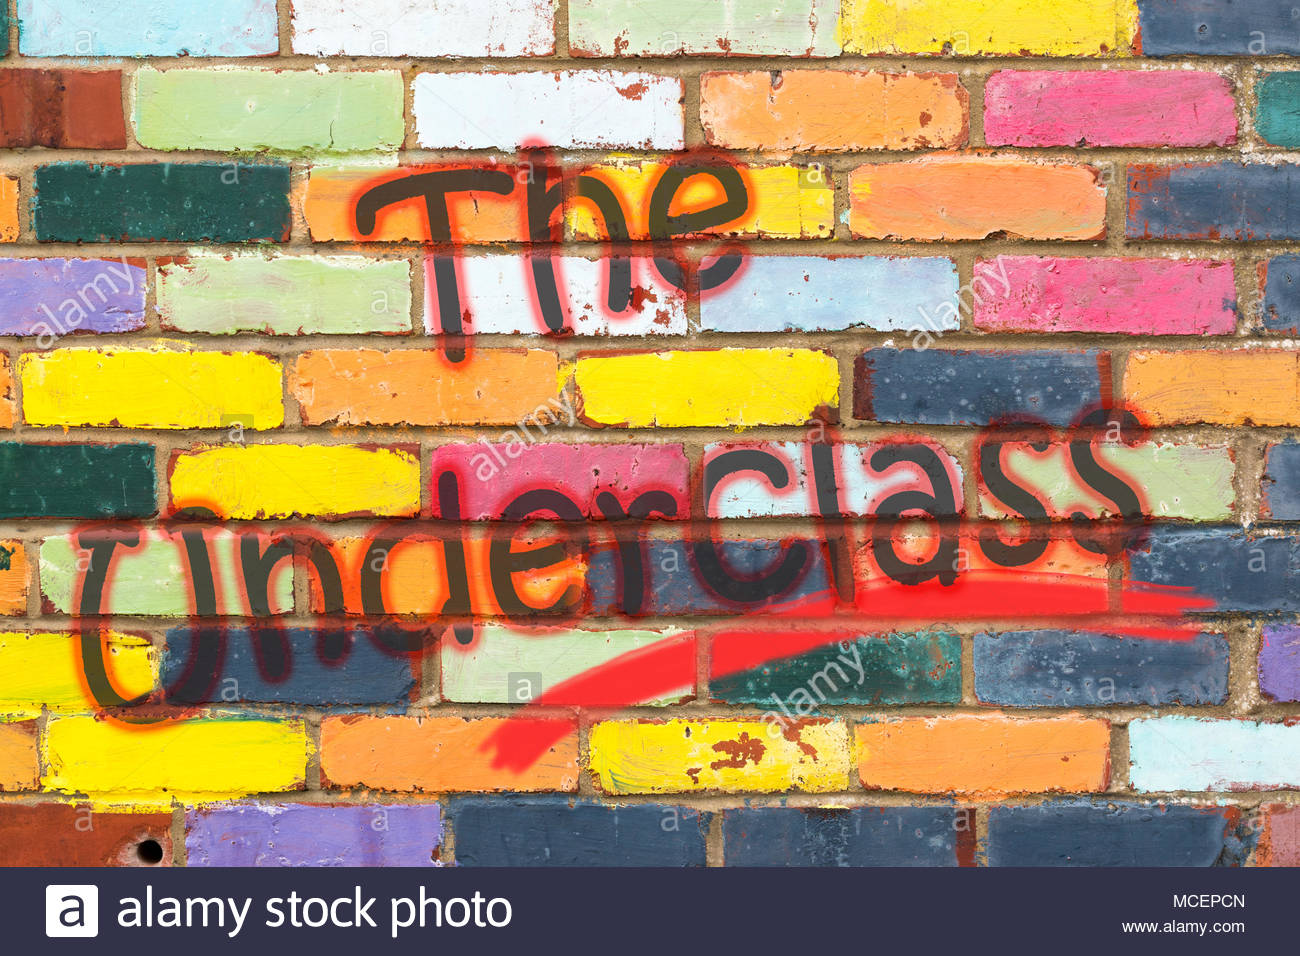 Looking at a very colourful brickwall with the wording The Underclass. Dorset, England - Stock Image